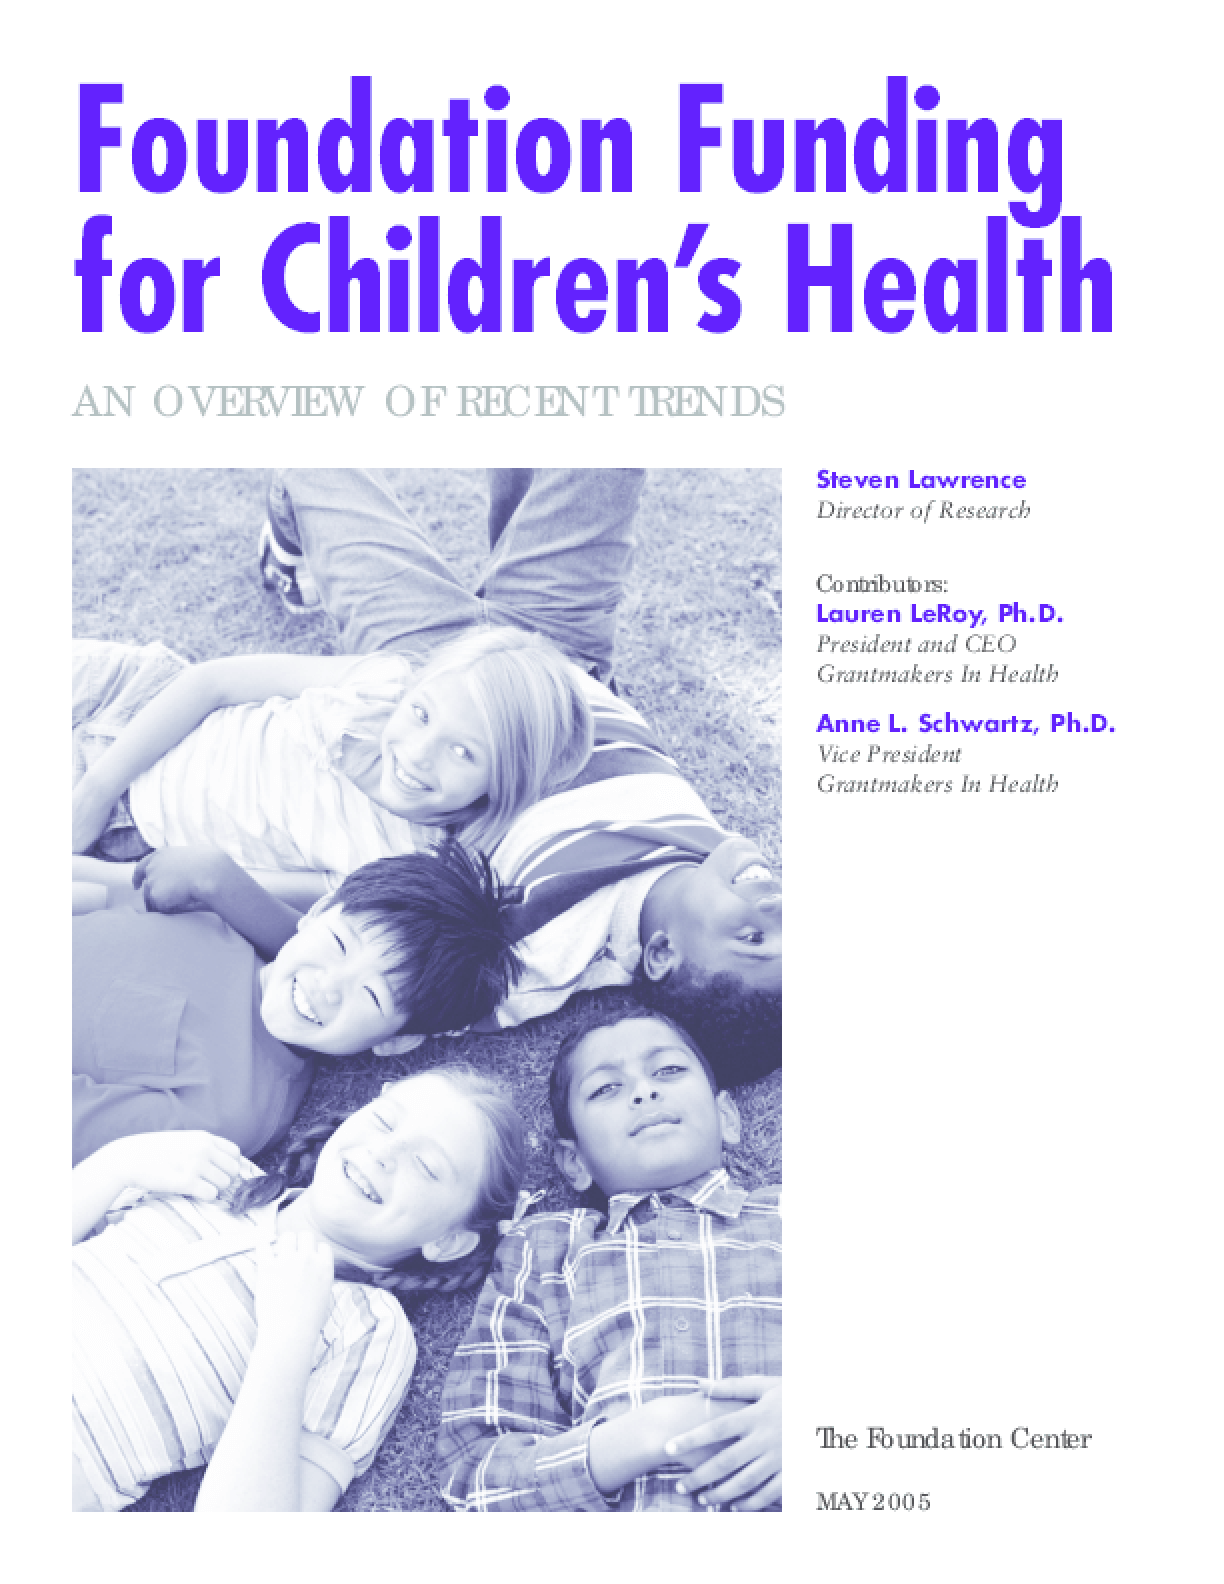 Foundation Funding For Children's Health: an Overview of Recent Trends